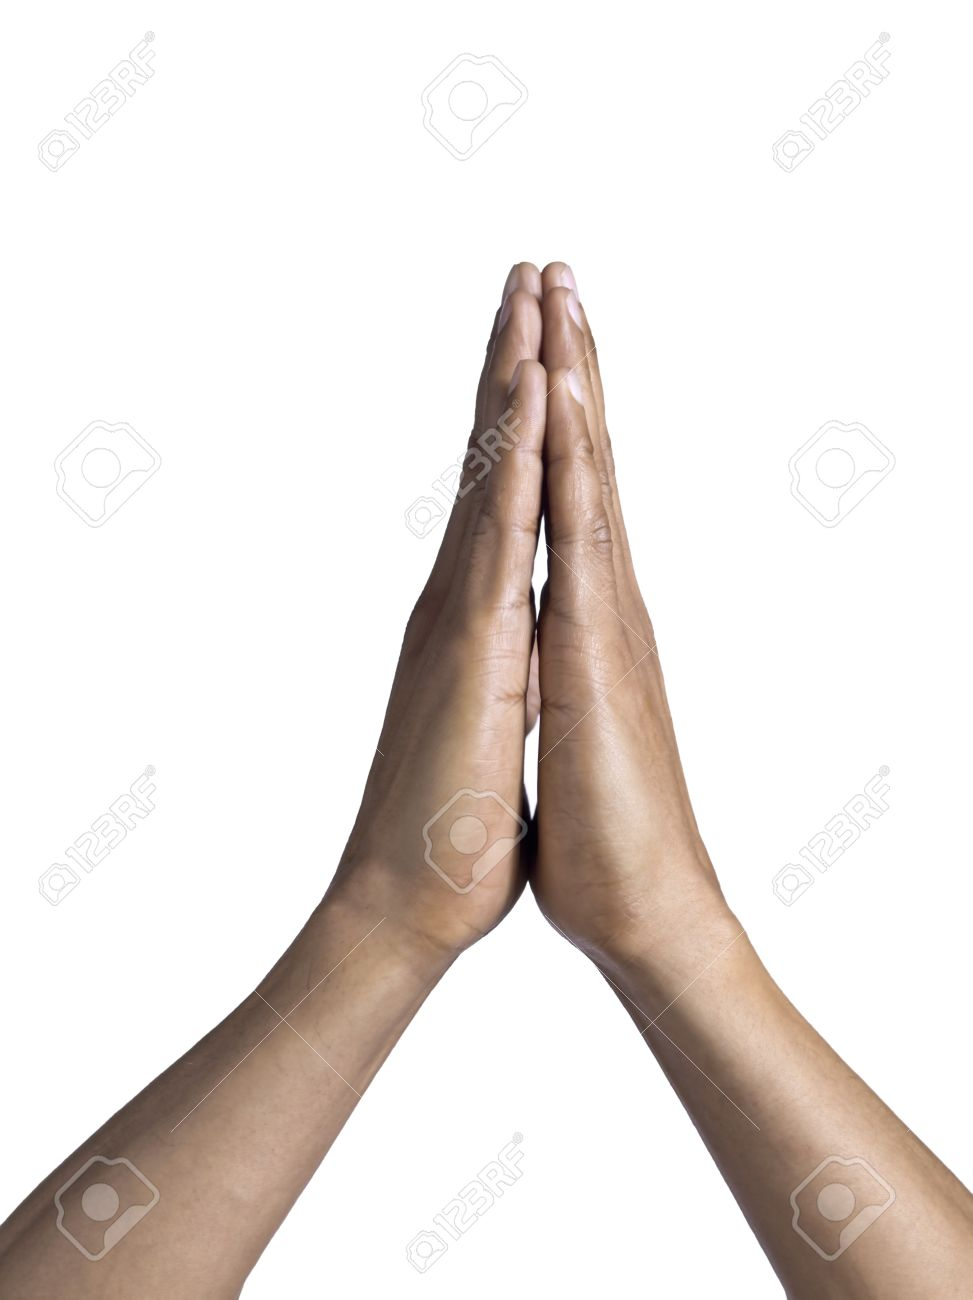 isolated image of a man s praying hands over a white background